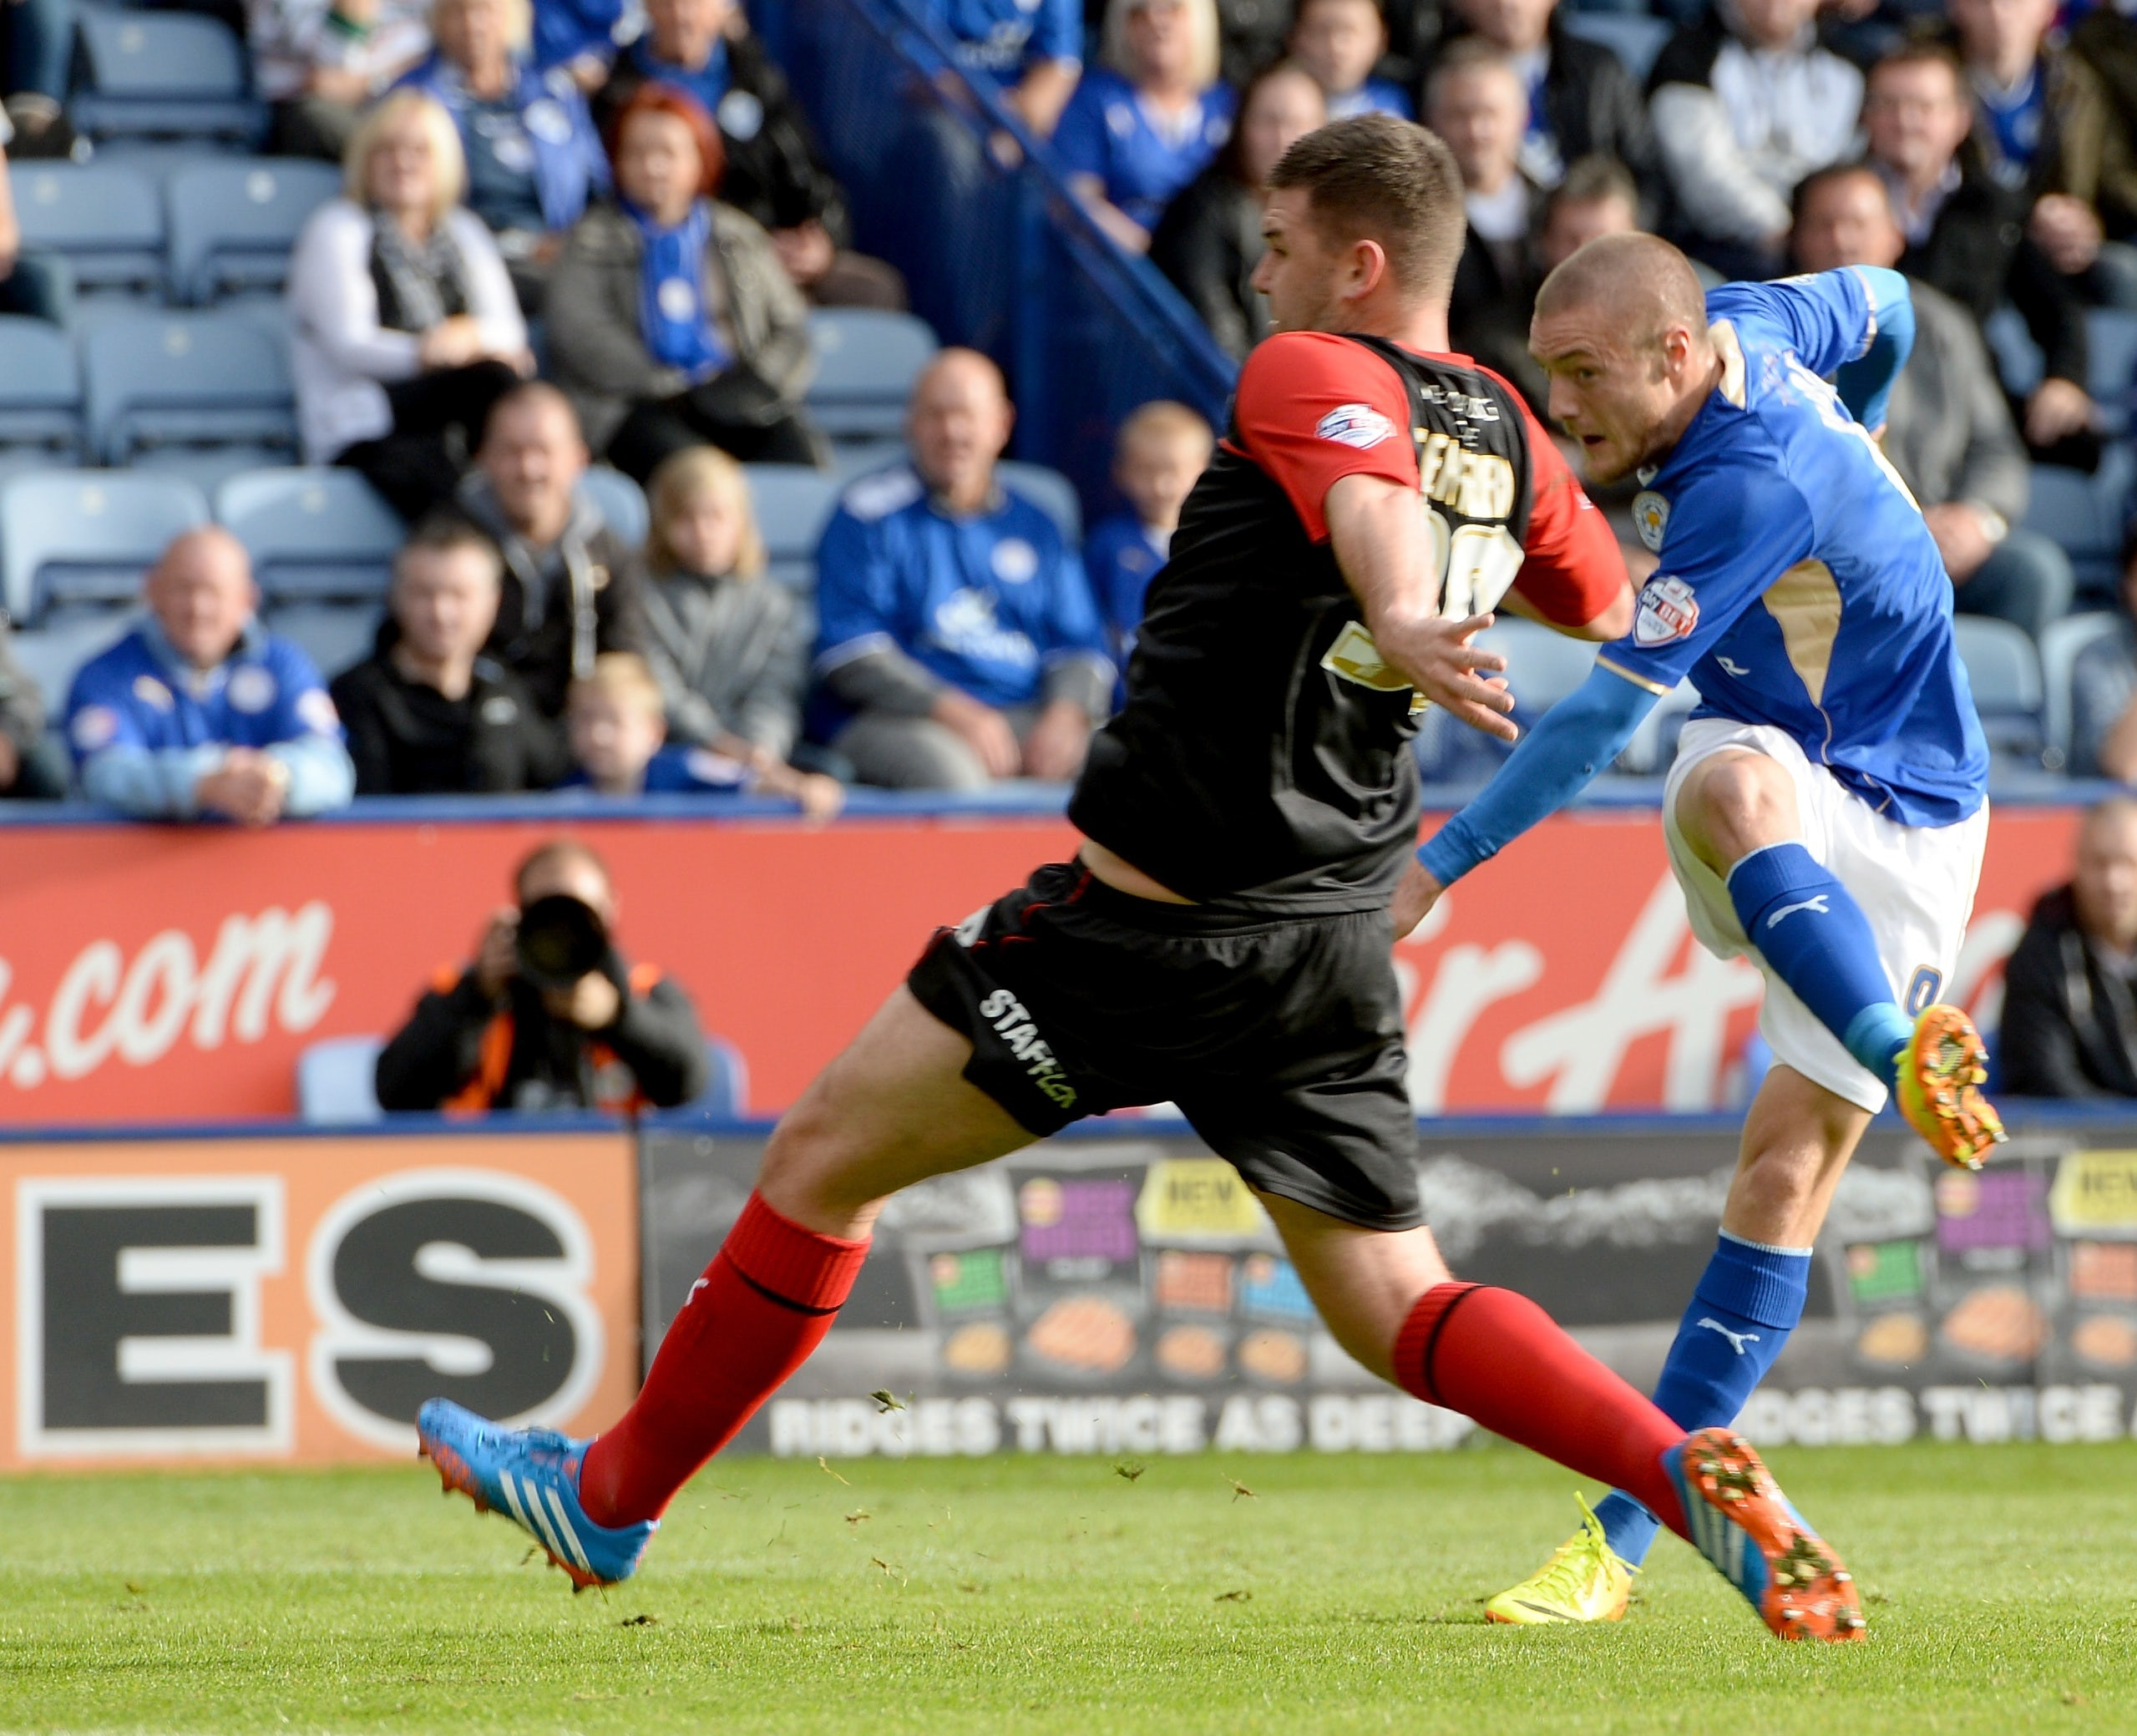 Jamie Vardy of Leicester scores the opening goal during the Sky Bet Championship match between Leicester City and Huddersfield Town on October 19, 2013